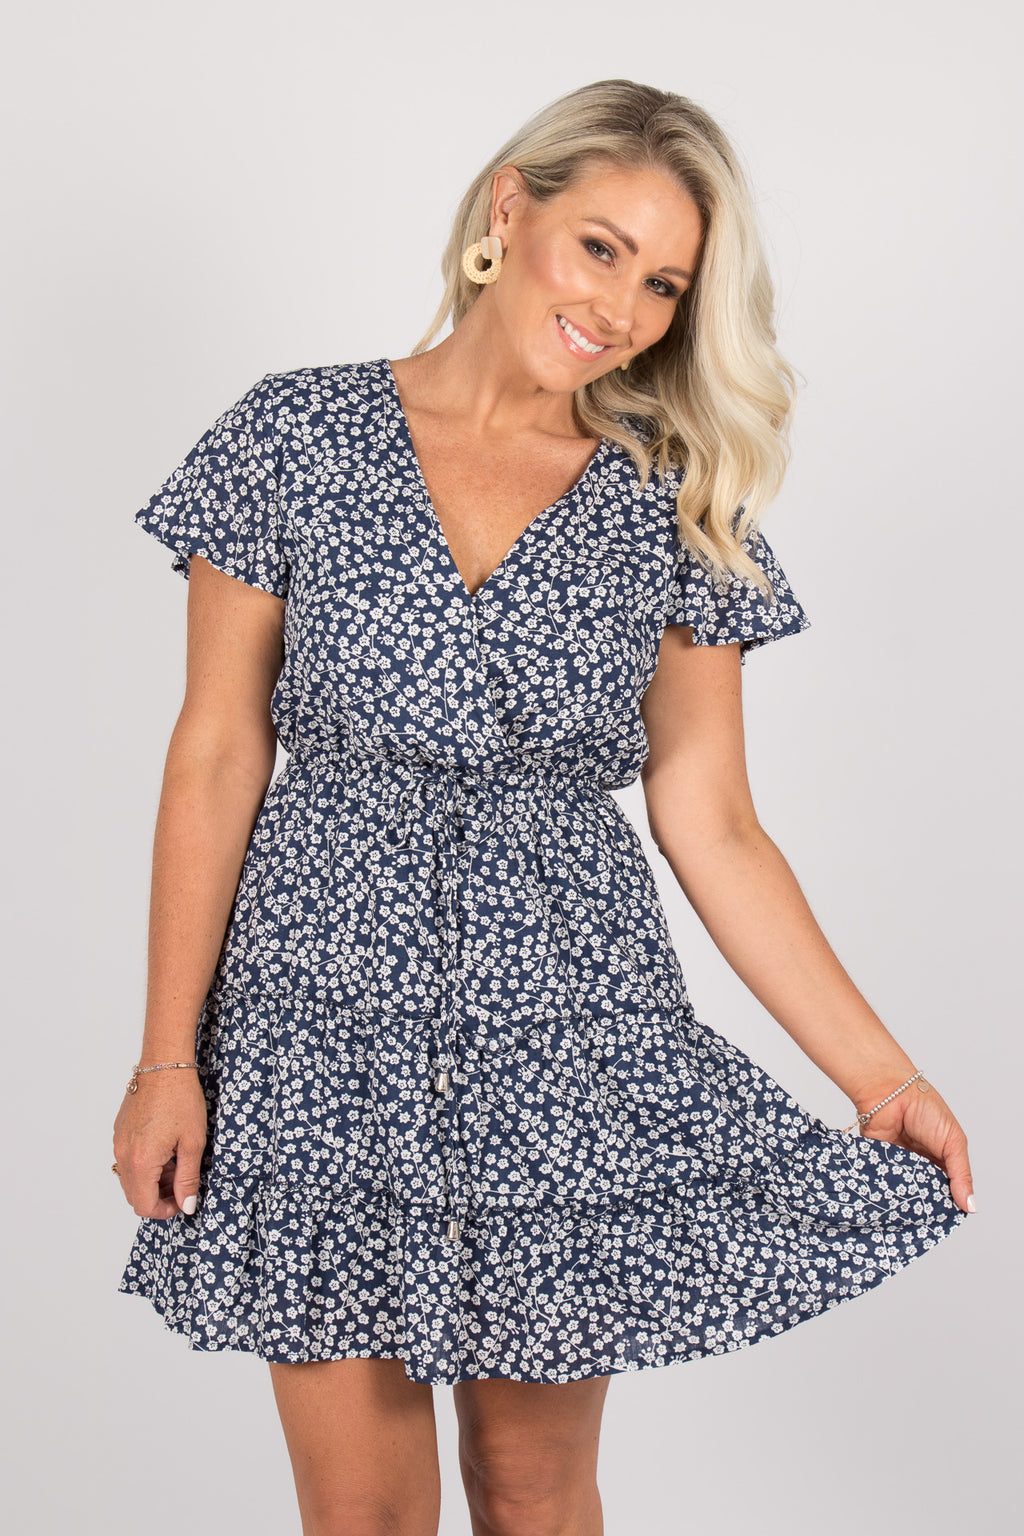 Sky Dress in Navy